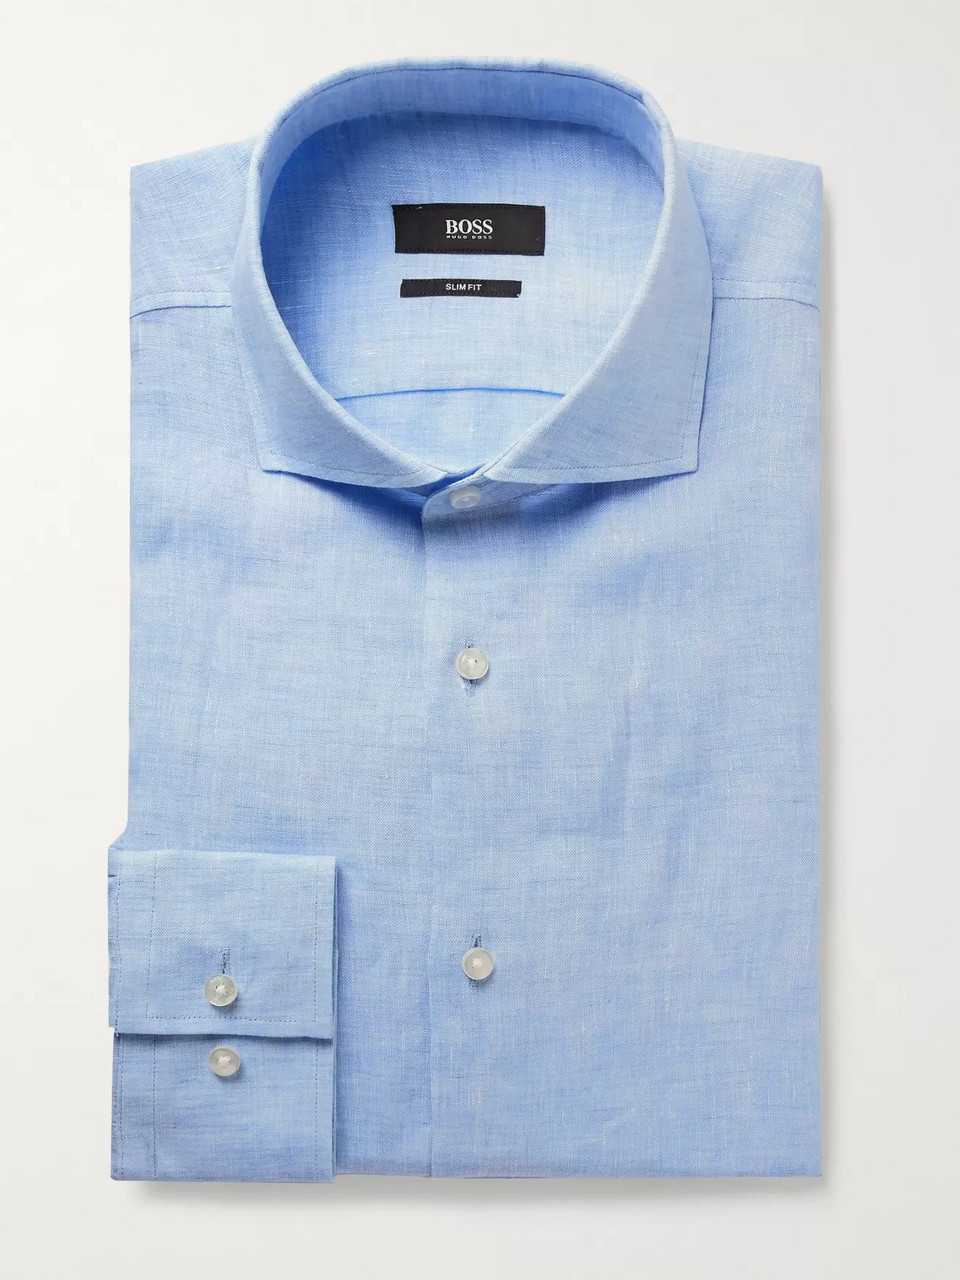 70496f6954f8ca Linen Shirts for Men | Designer Menswear | MR PORTER